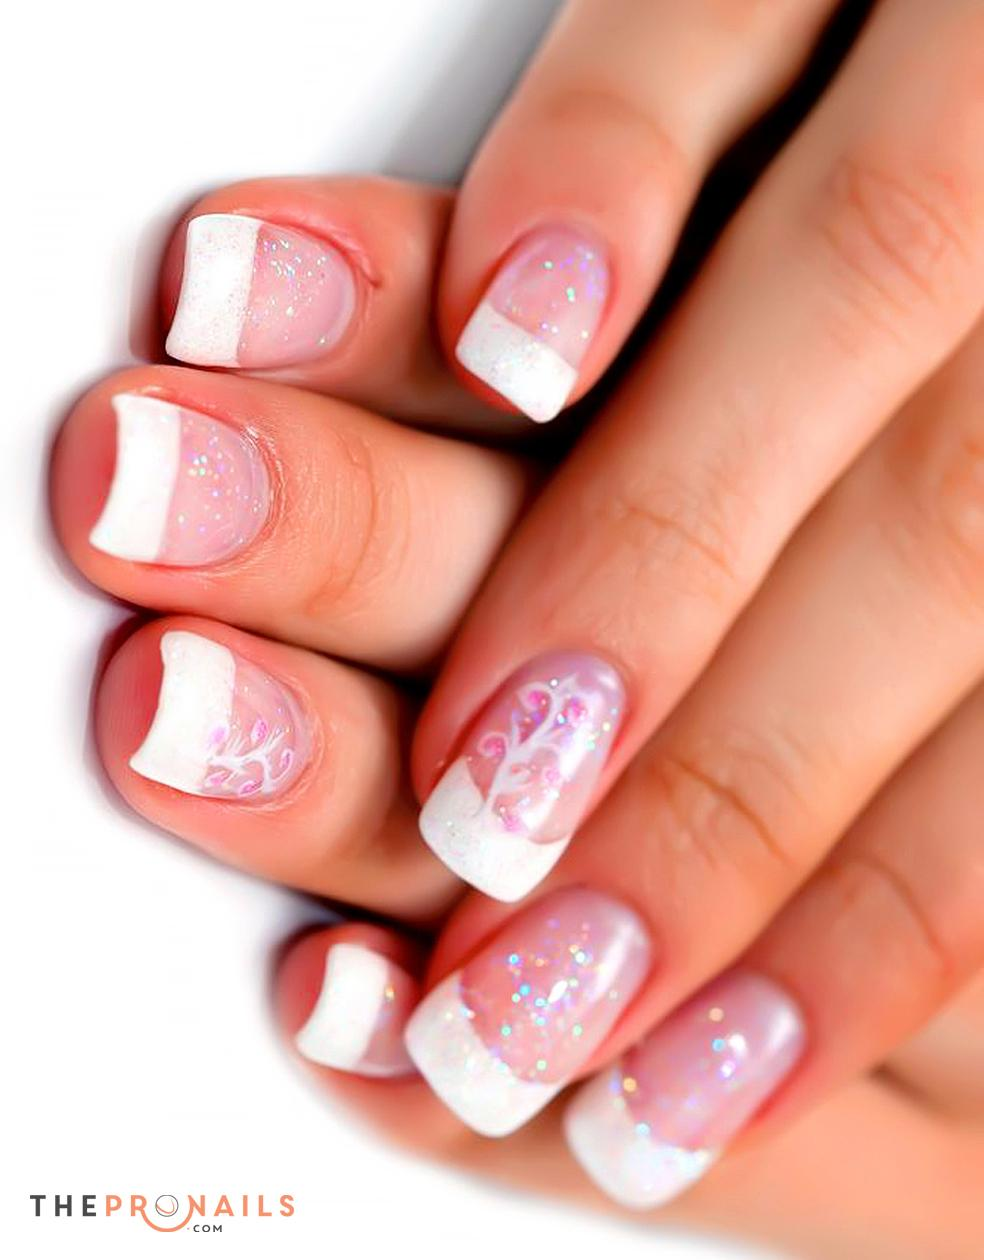 Thepronails why women must choose solar nails because it is more convenient easy to apply refillable will not crack or break will not change colors even under the solutioingenieria Images